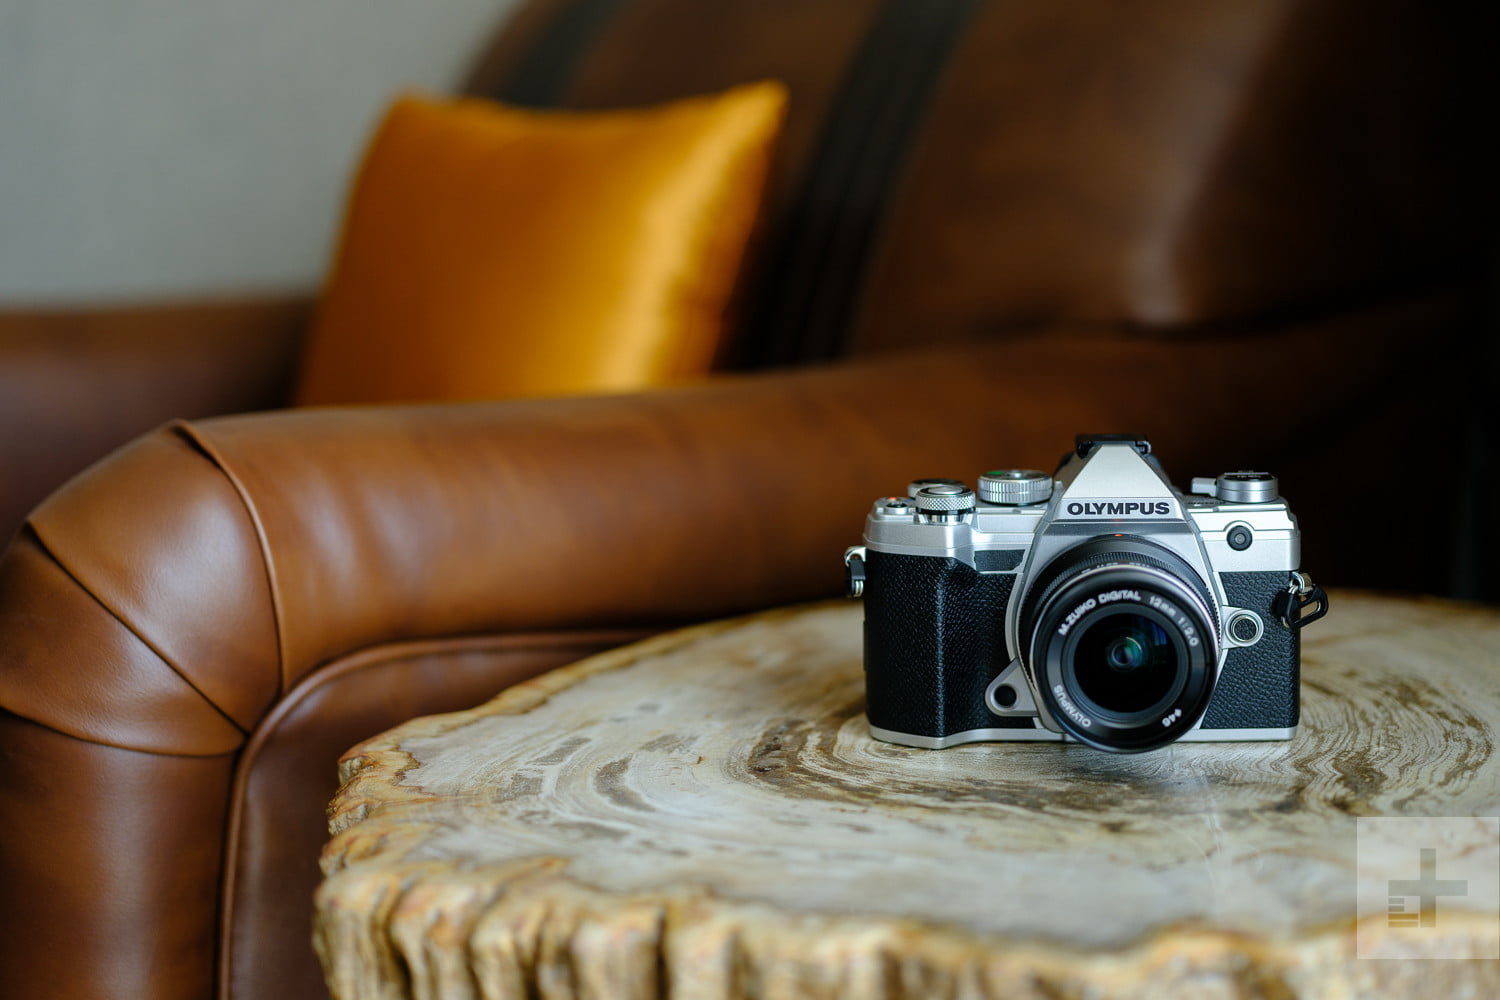 New Olympus OM-D E-M5 Mark III finally catches up to 3-year-old E-M1 Mark II